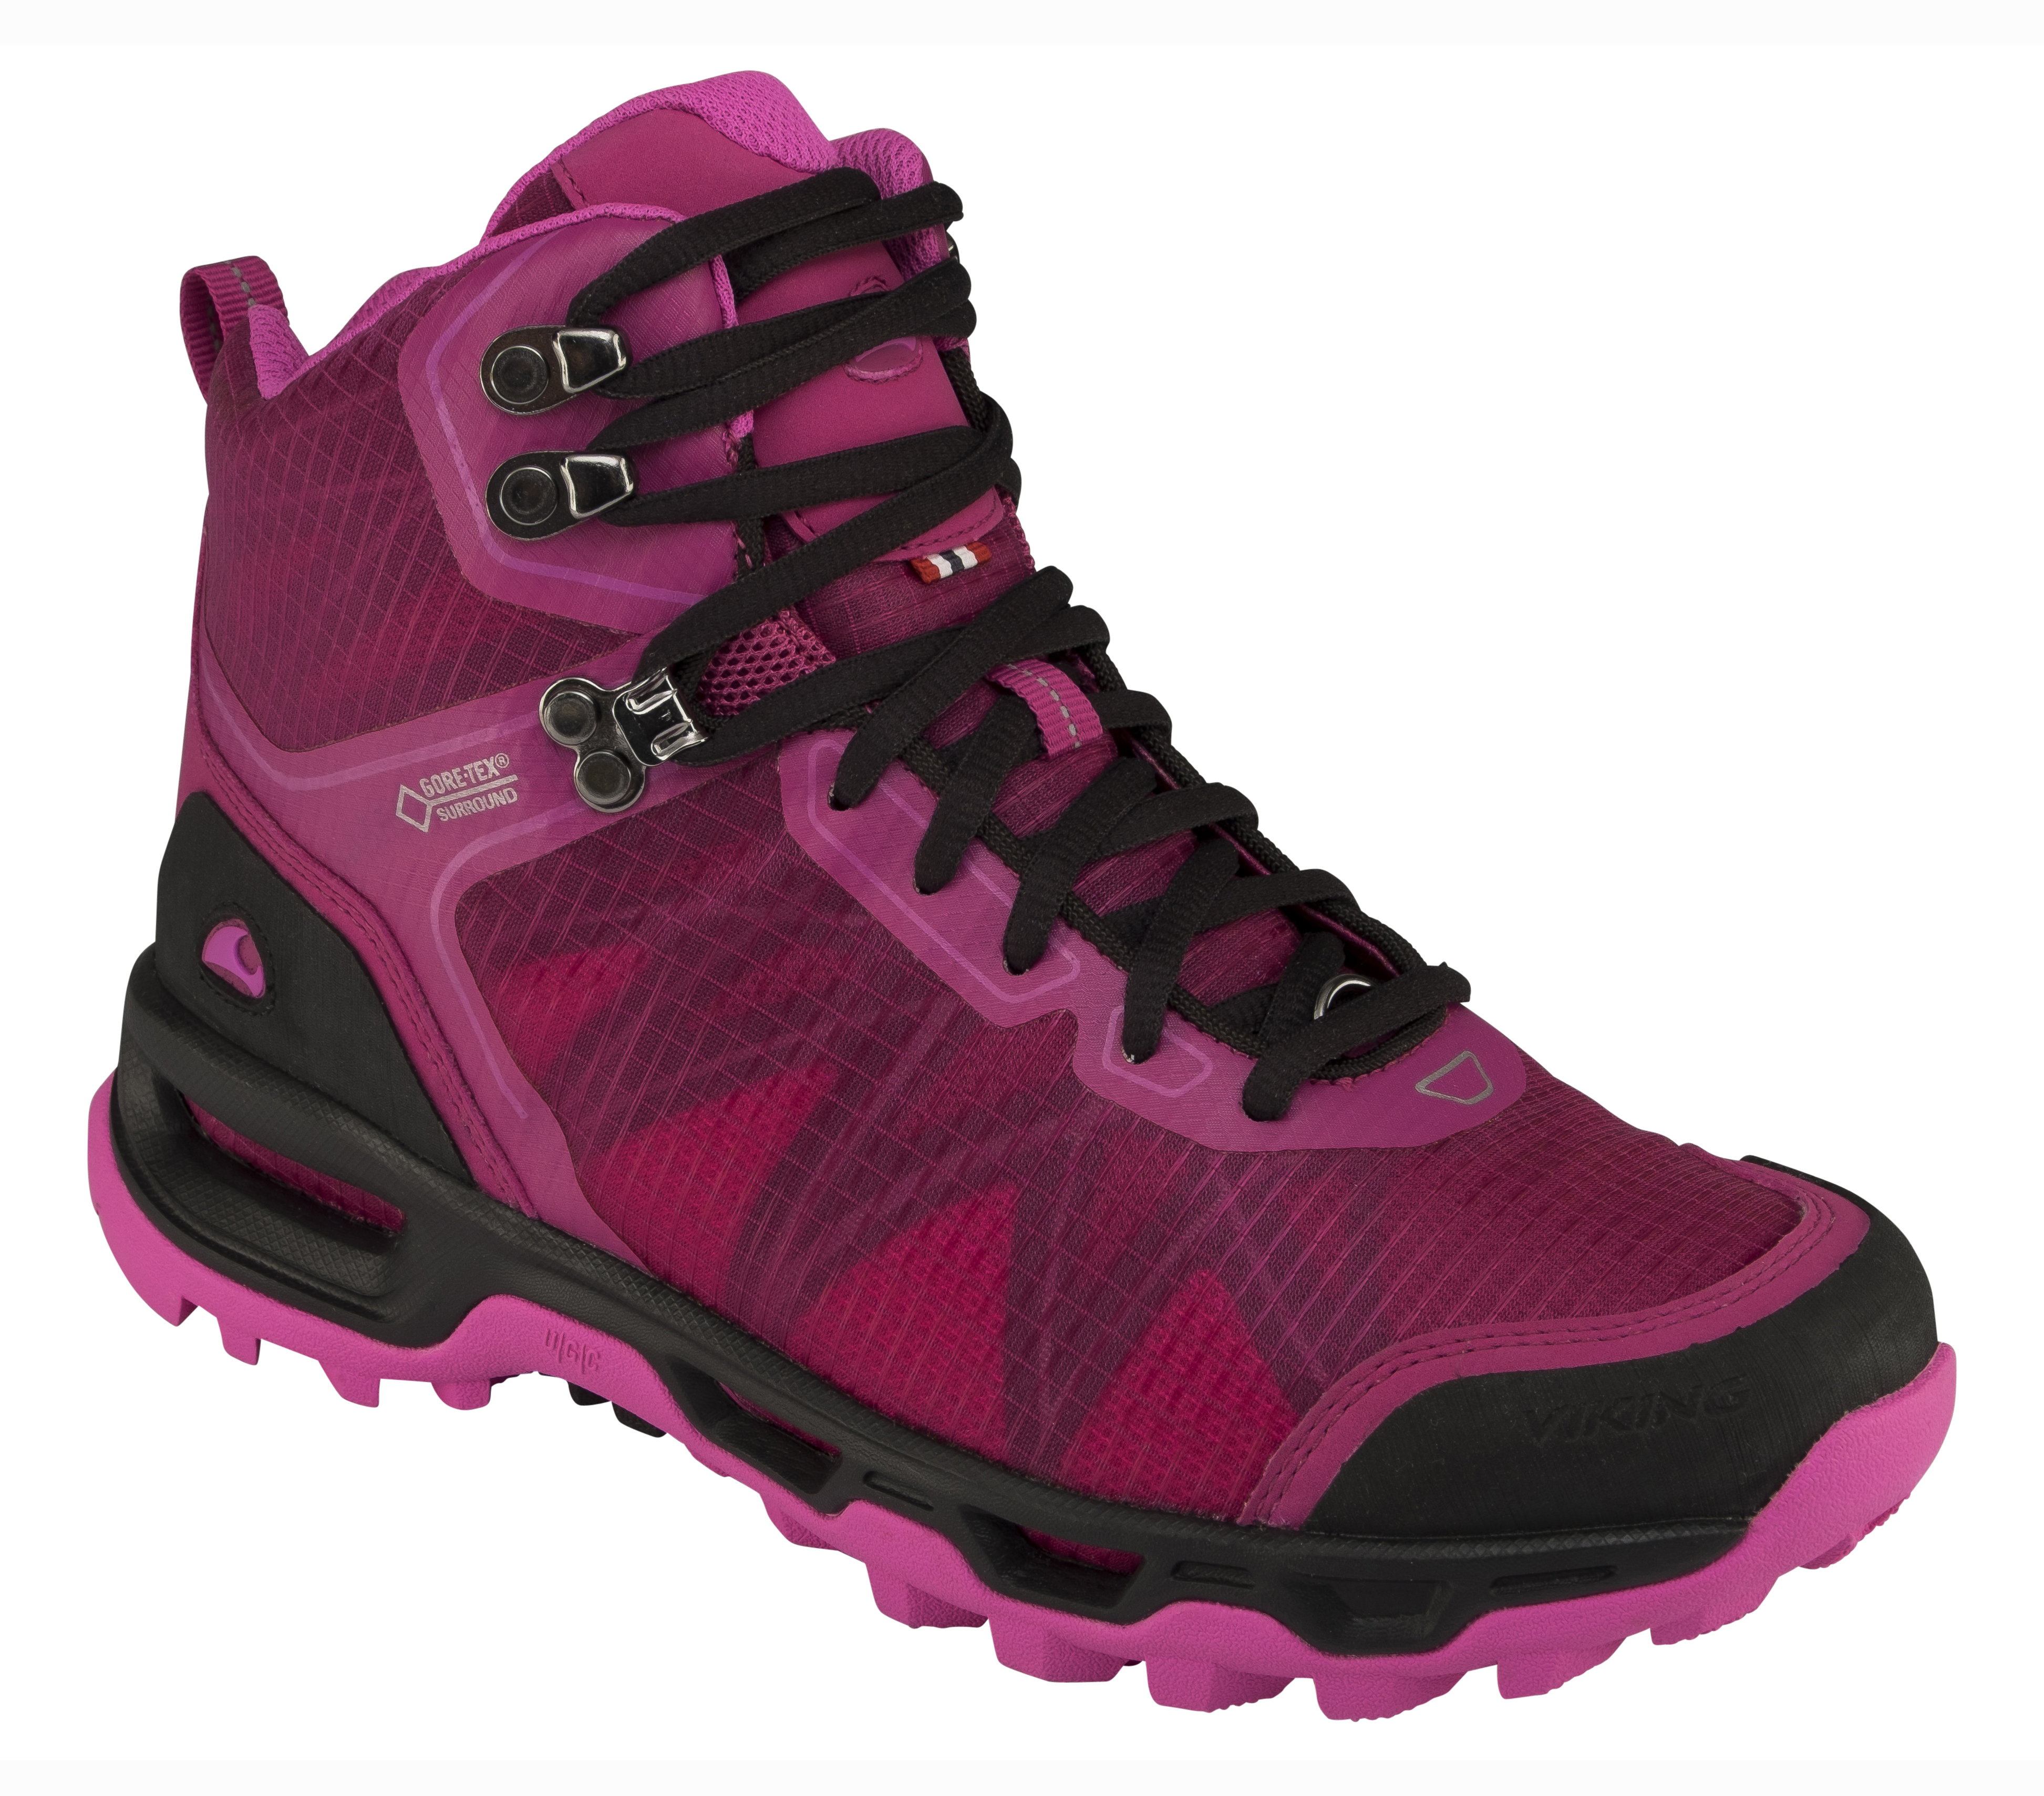 Kuling Mid GTX, Womens Low Rise Hiking Boots Viking